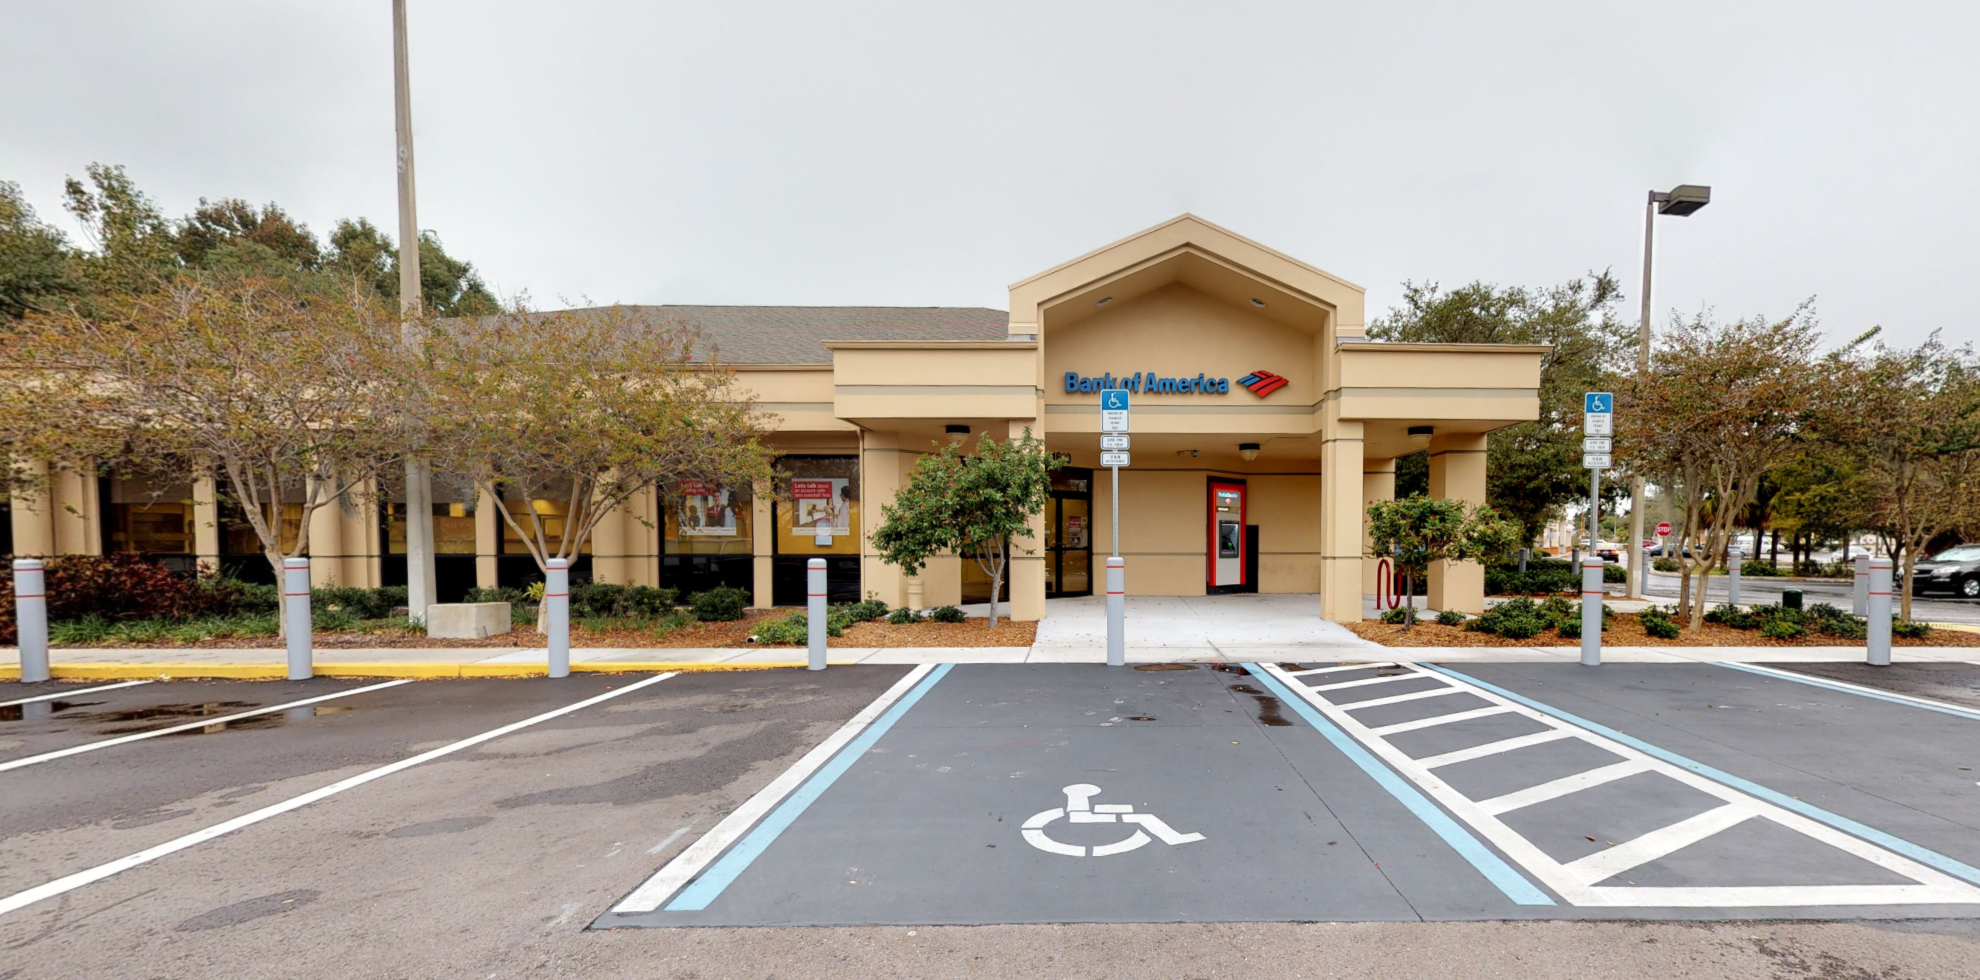 Bank of America financial center with drive-thru ATM   1610 S Missouri Ave, Clearwater, FL 33756